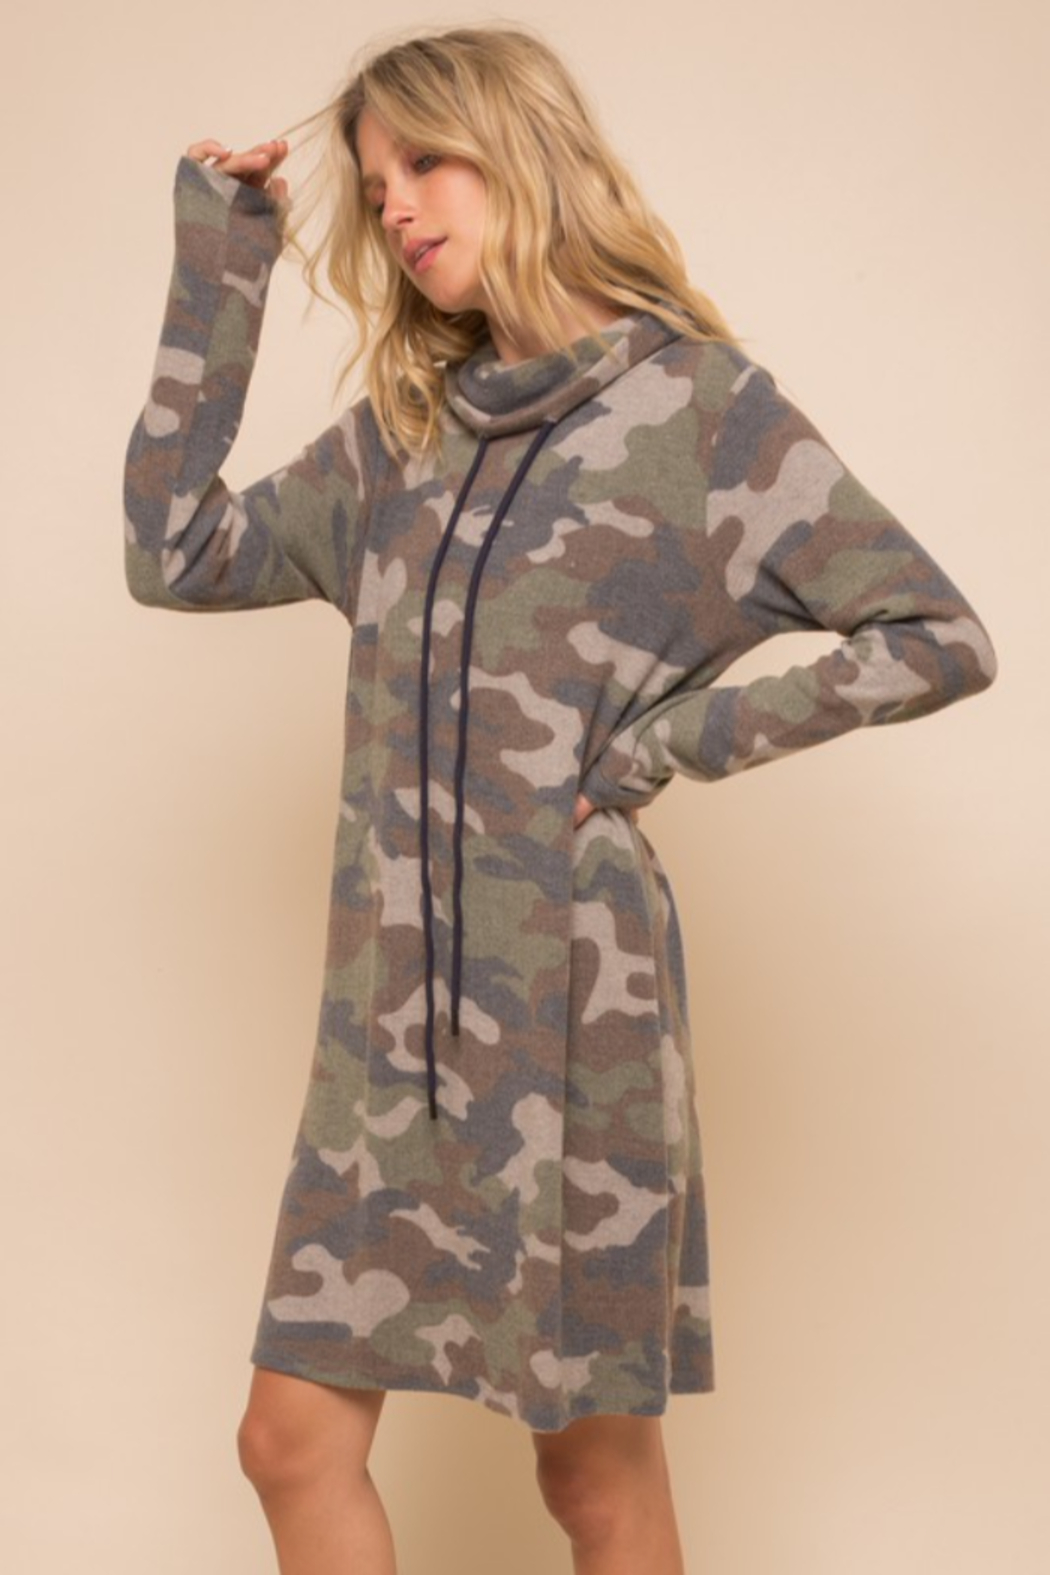 Hem & Thread Soft Brushed Camo Knit Dress - Main Image